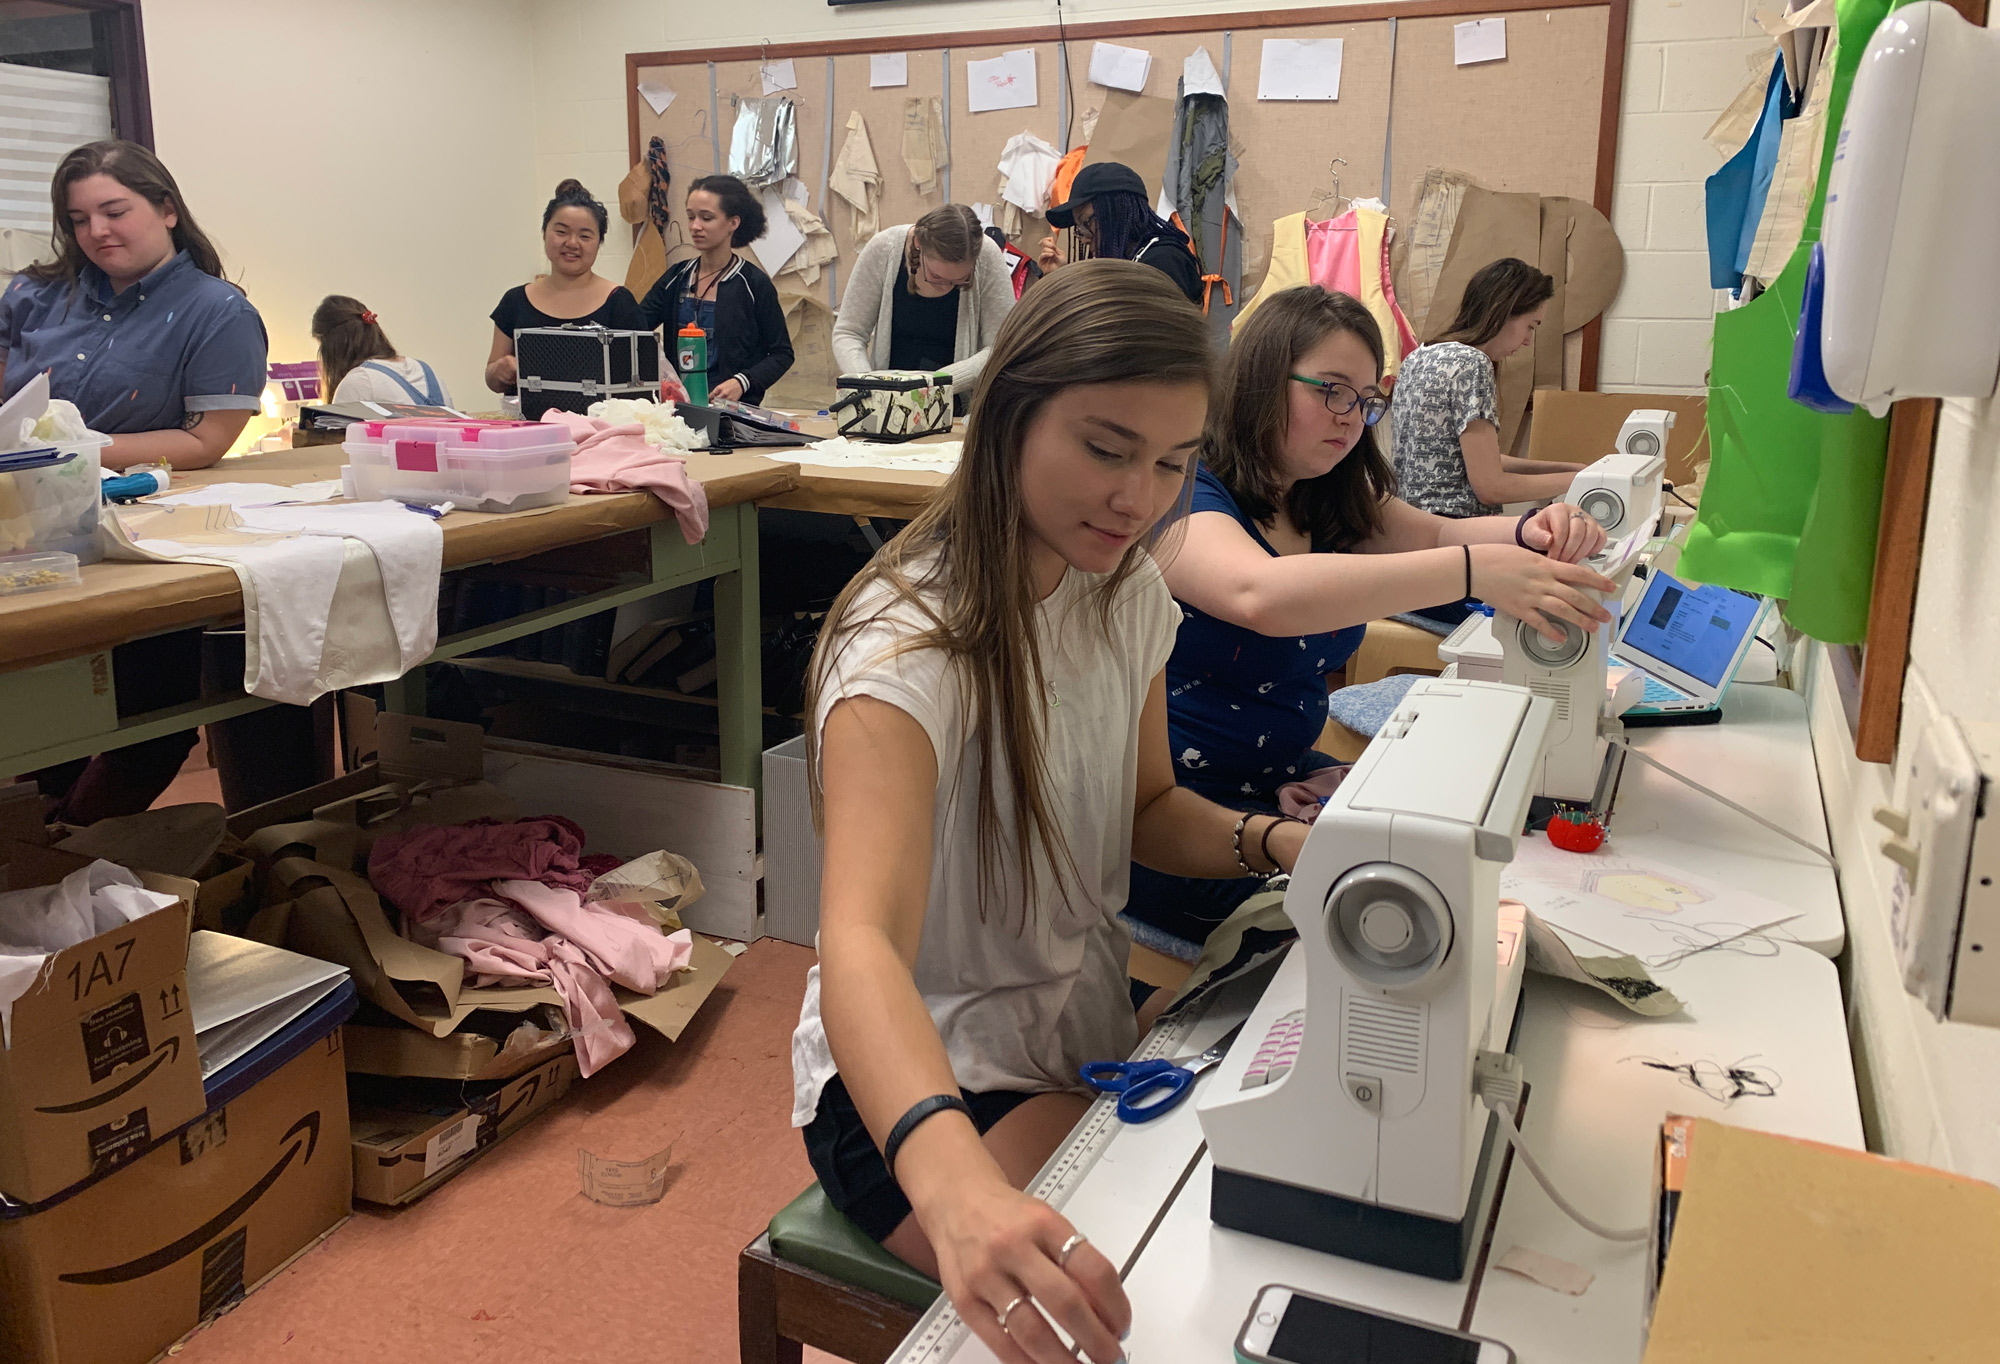 Students working at sewing machines